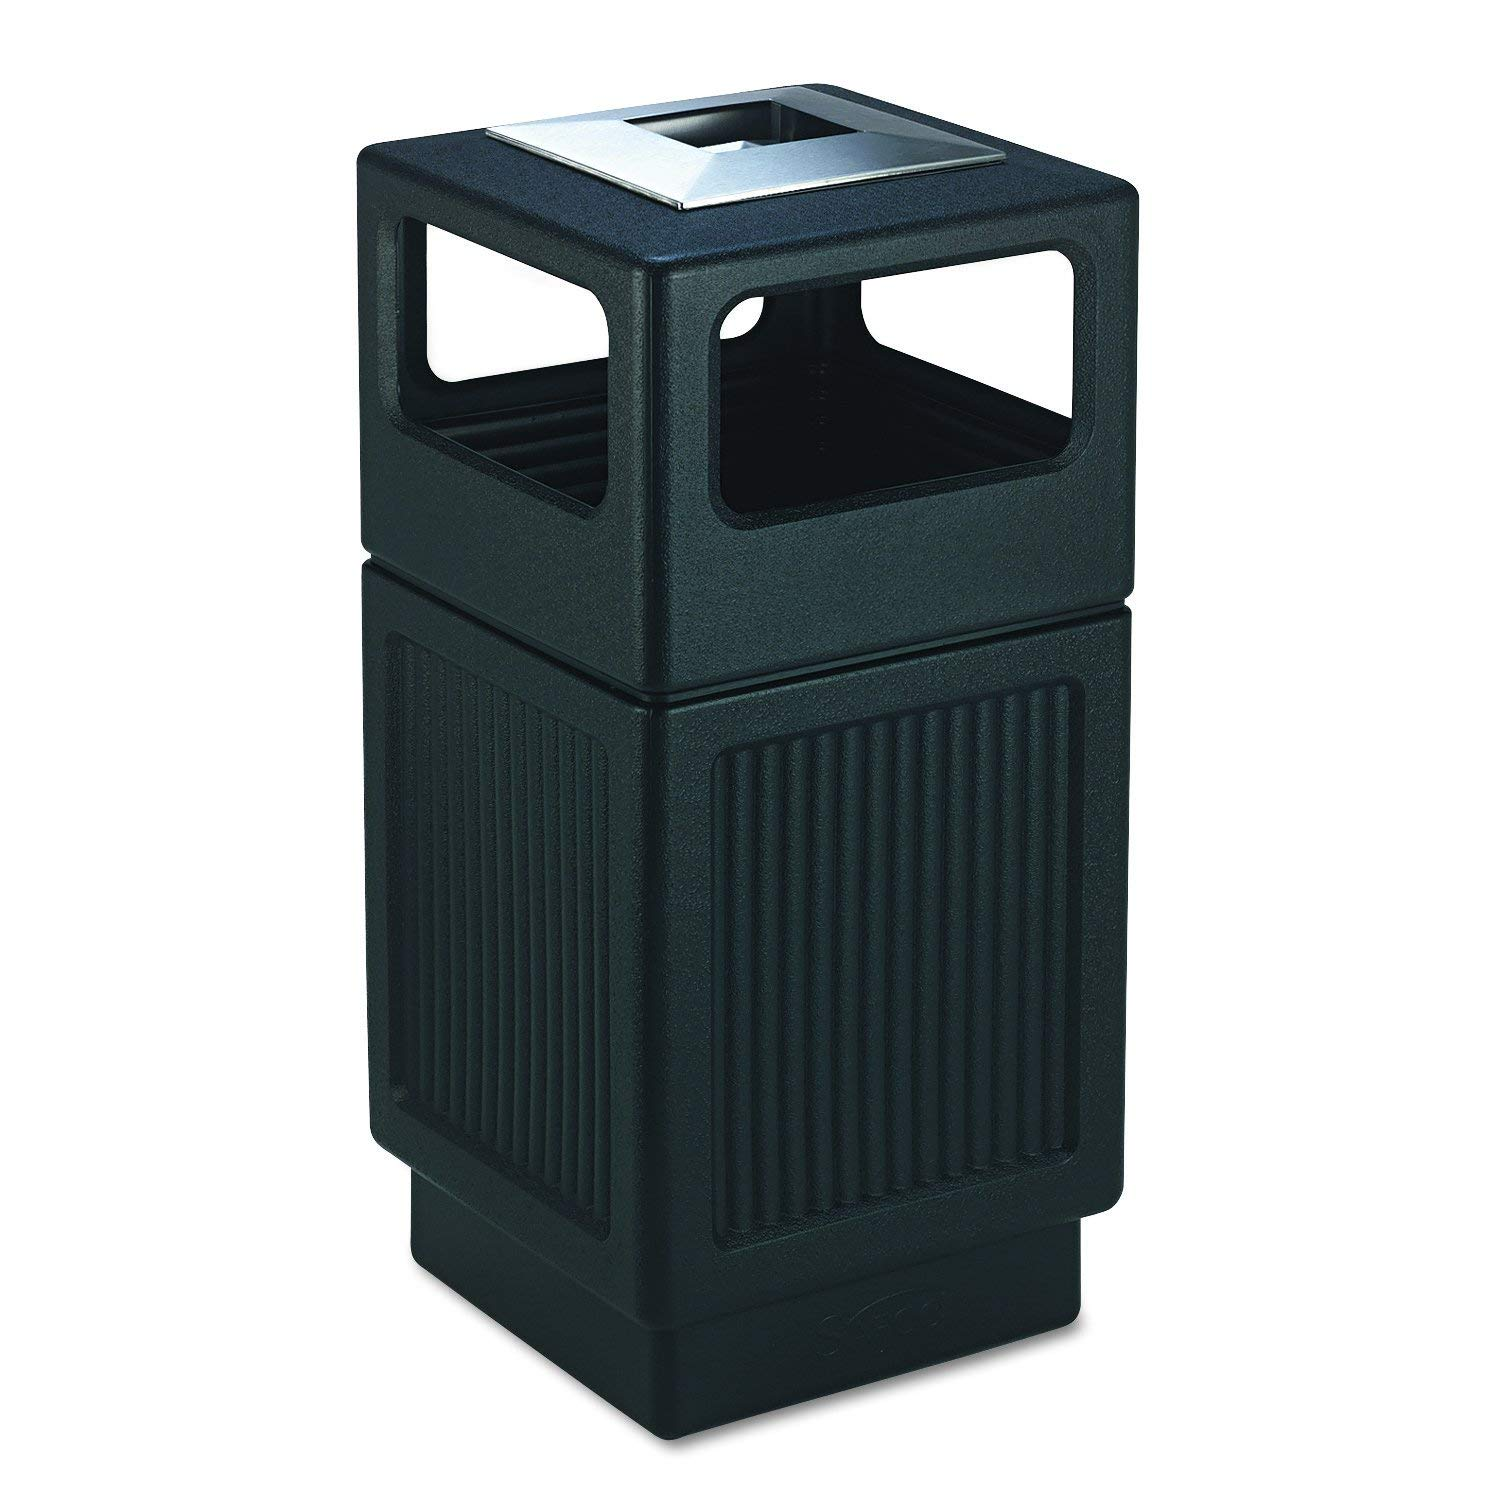 Safco Products Canmeleon Outdoor/Indoor Recessed Panel Trash Can with Ash Urn 9477BL, Black, Decorative Fluted Panels, Stainless Steel Ashtray, 38 Gallon Capacity (Renewed) by Safco Products